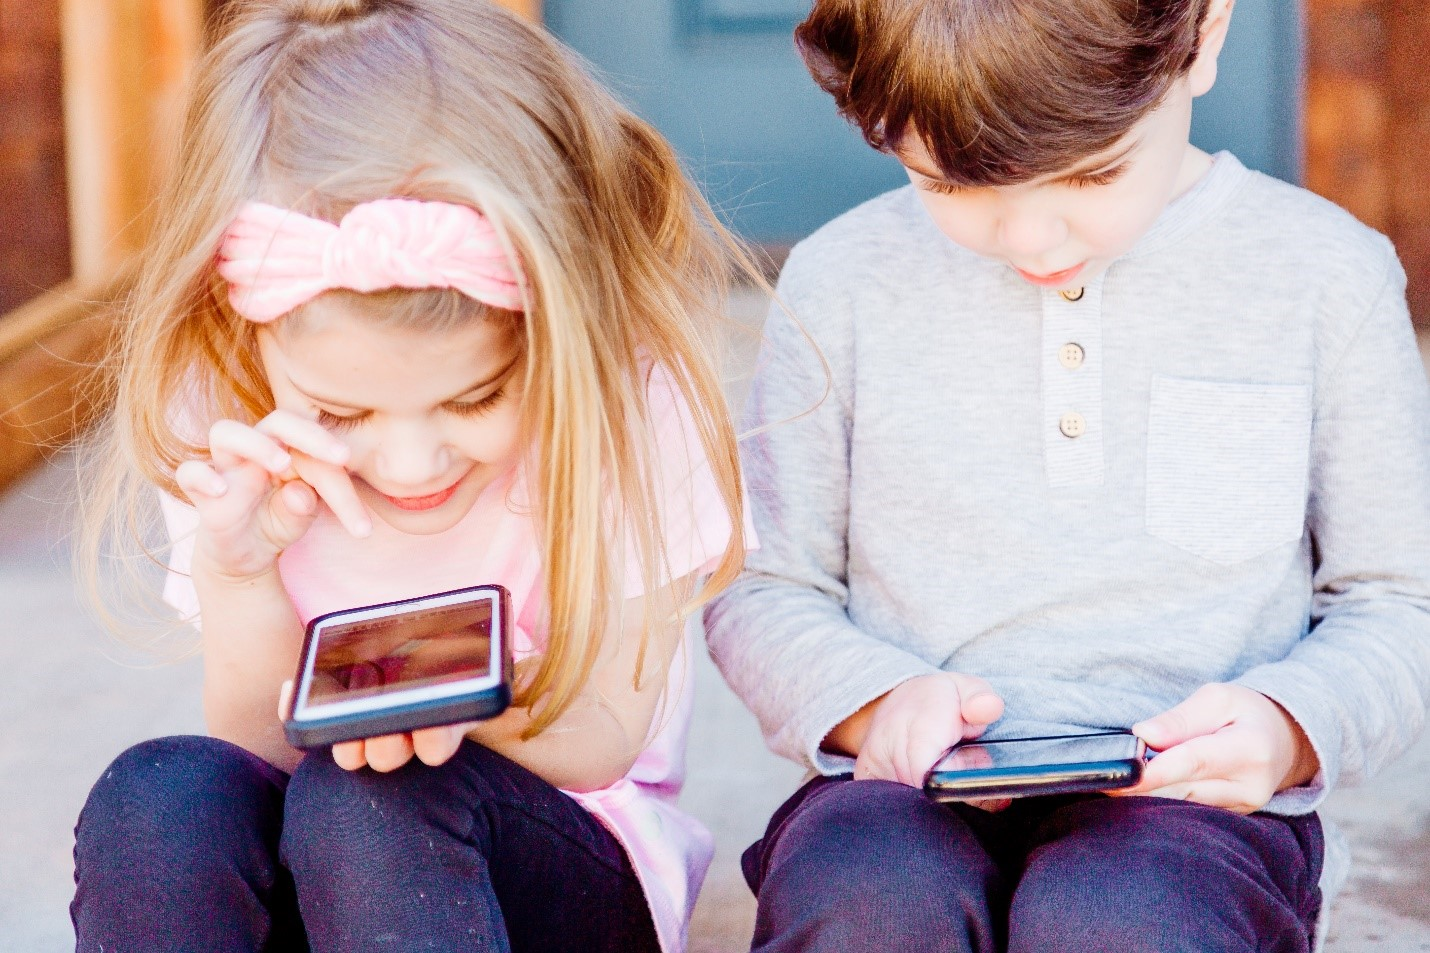 Children using smartphones and social media for entertainment.